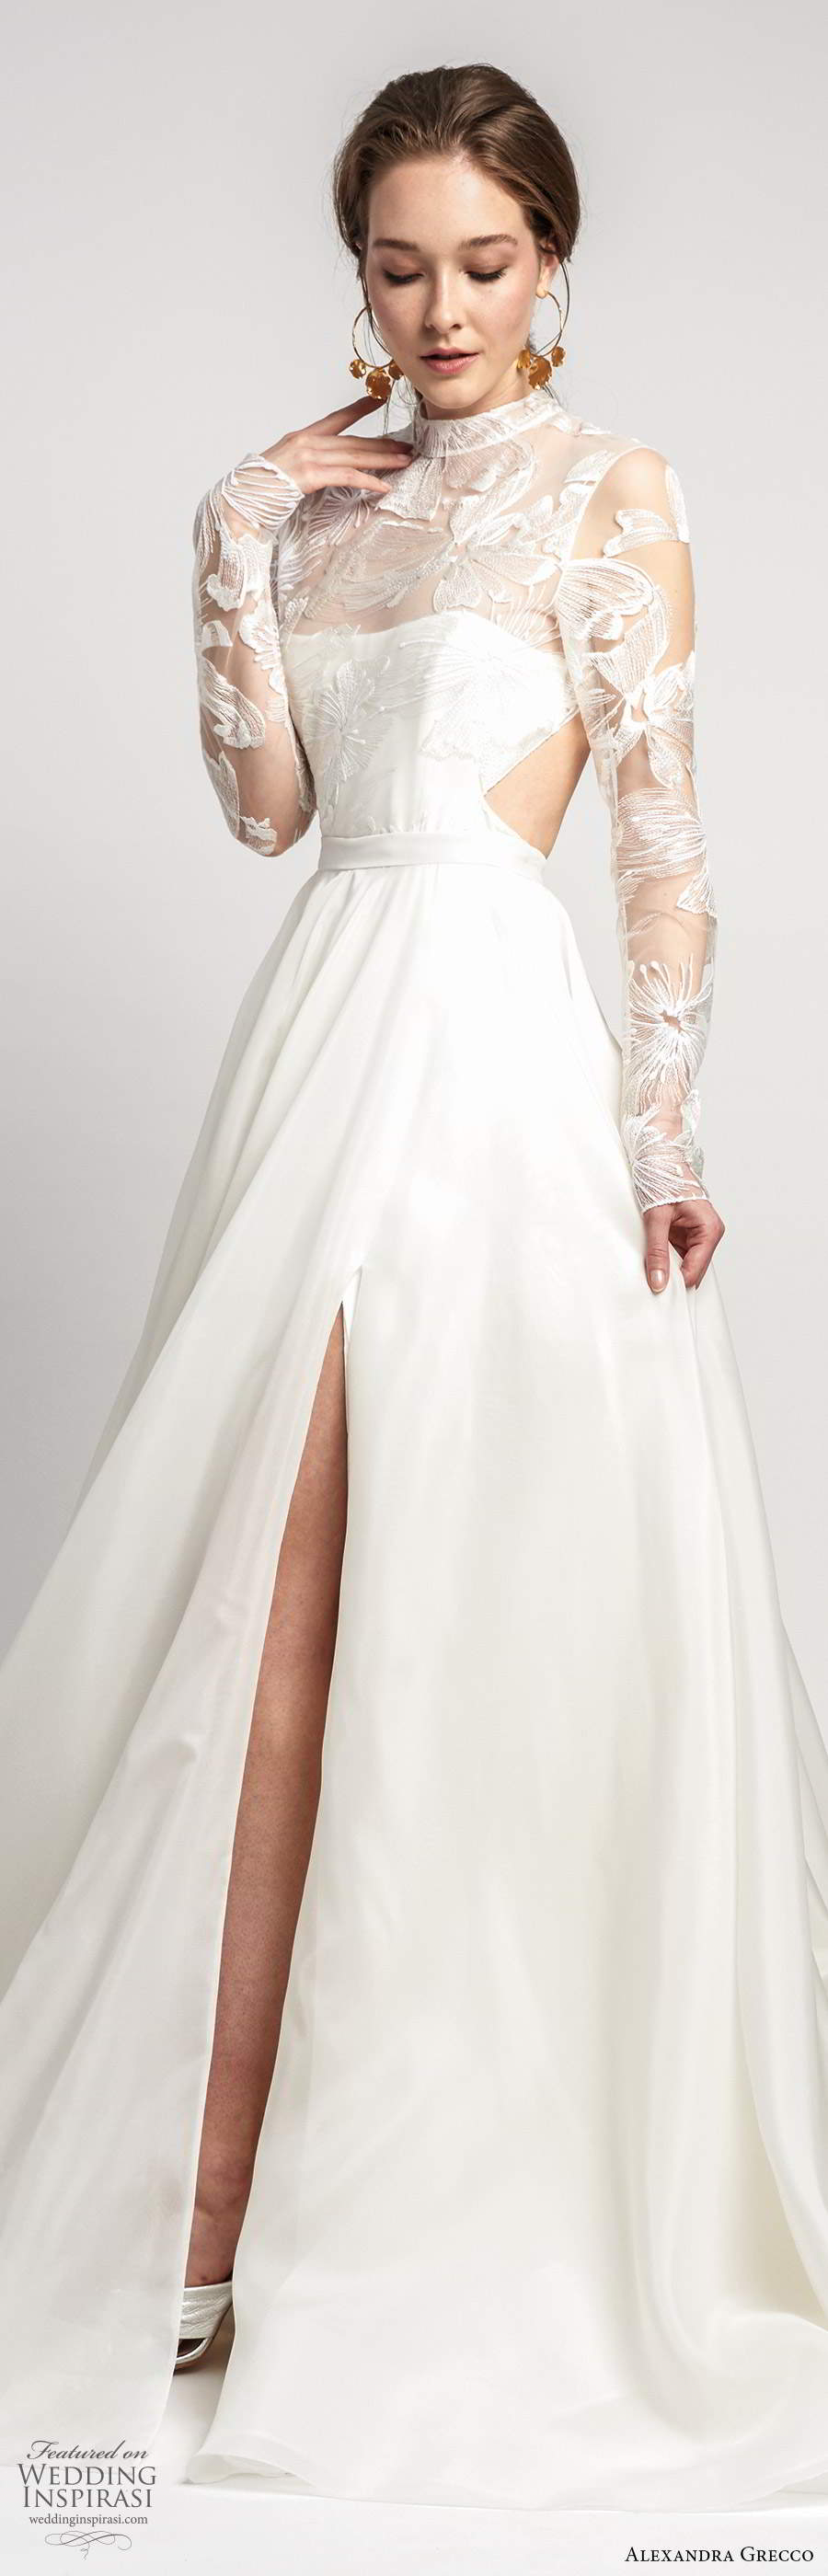 alexandra grecco 2020 bridal illusion long sleeves sheer high necklinge embellished lace bodice a line ball gown wedding dress slit skirt cutout back chapel train (3) lv